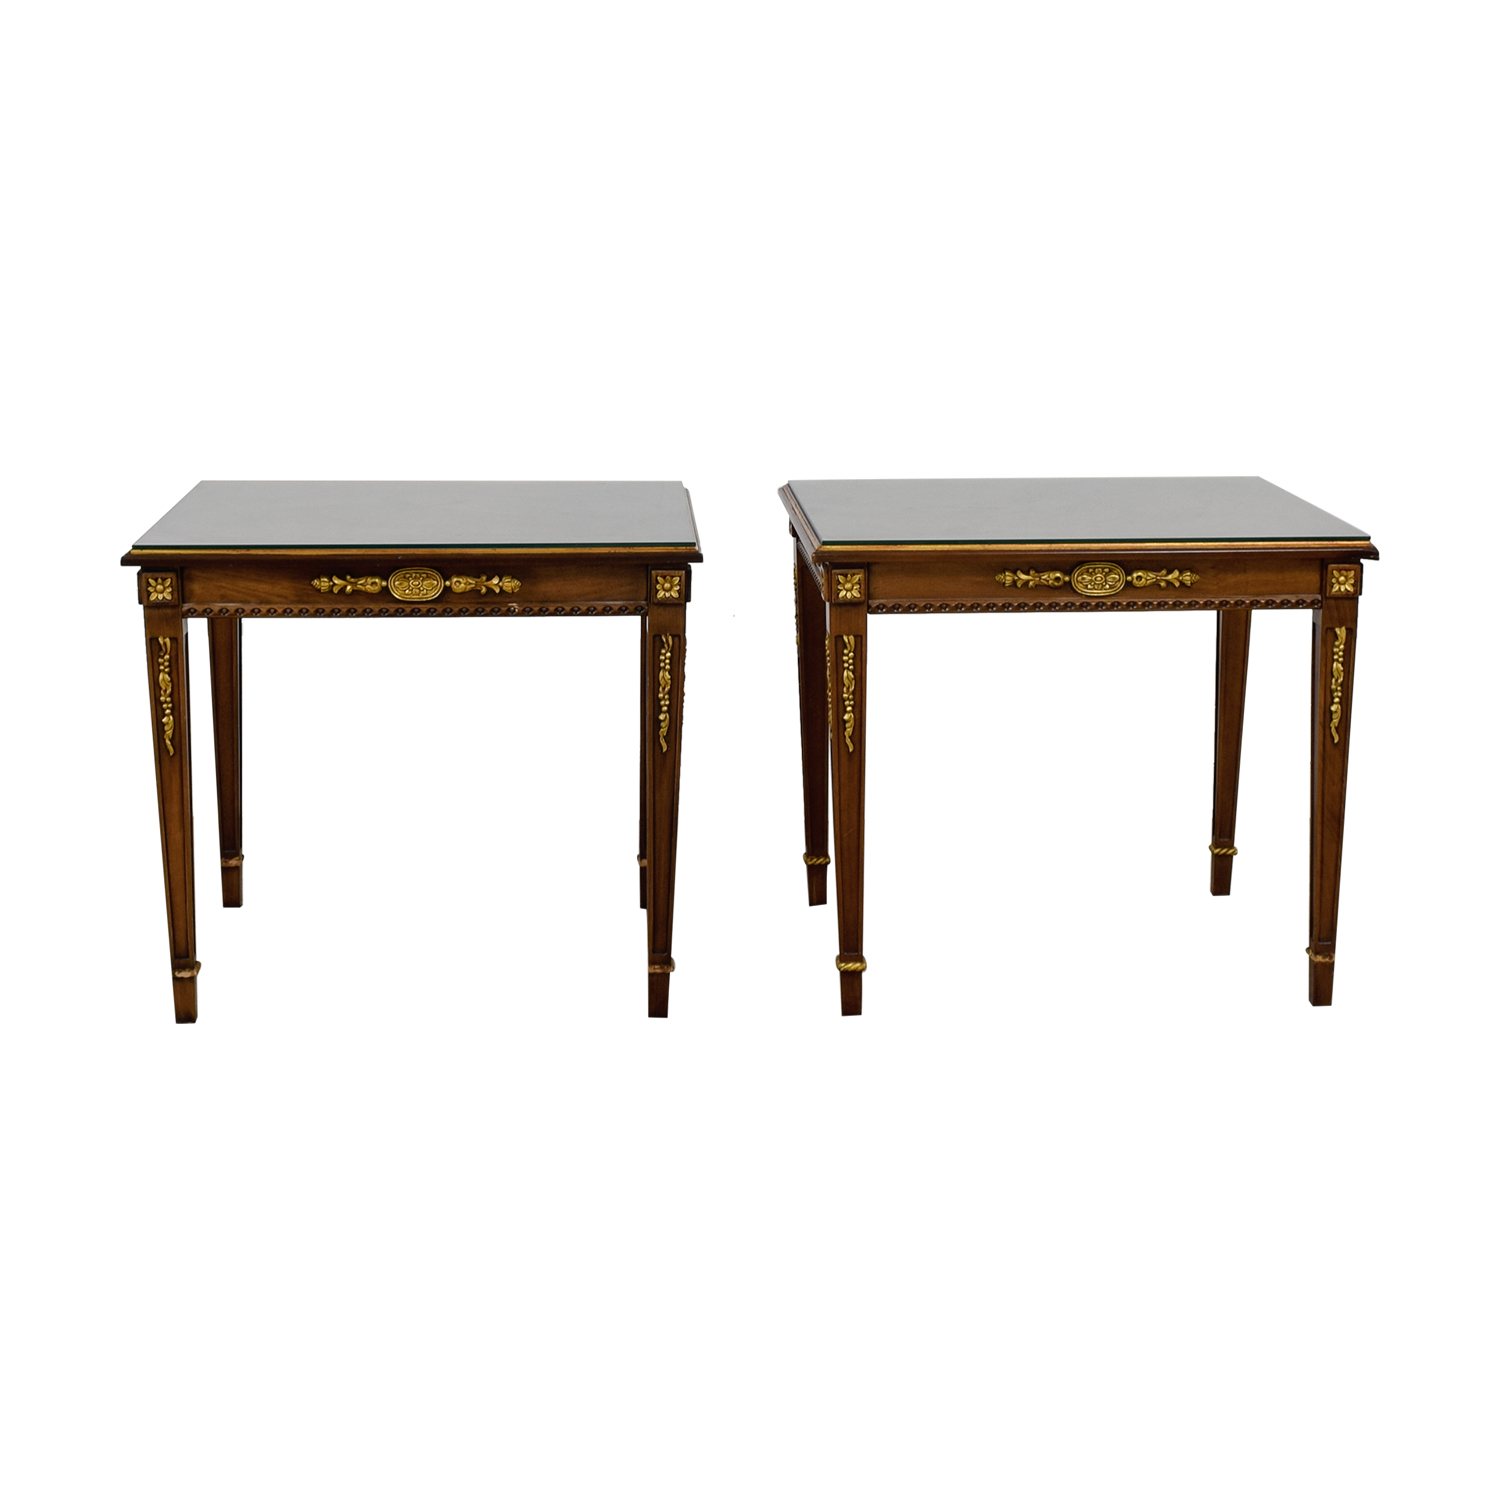 OFF Wood Gold Trimmed End Tables With Glass Protective Top - Glass coffee table with gold trim